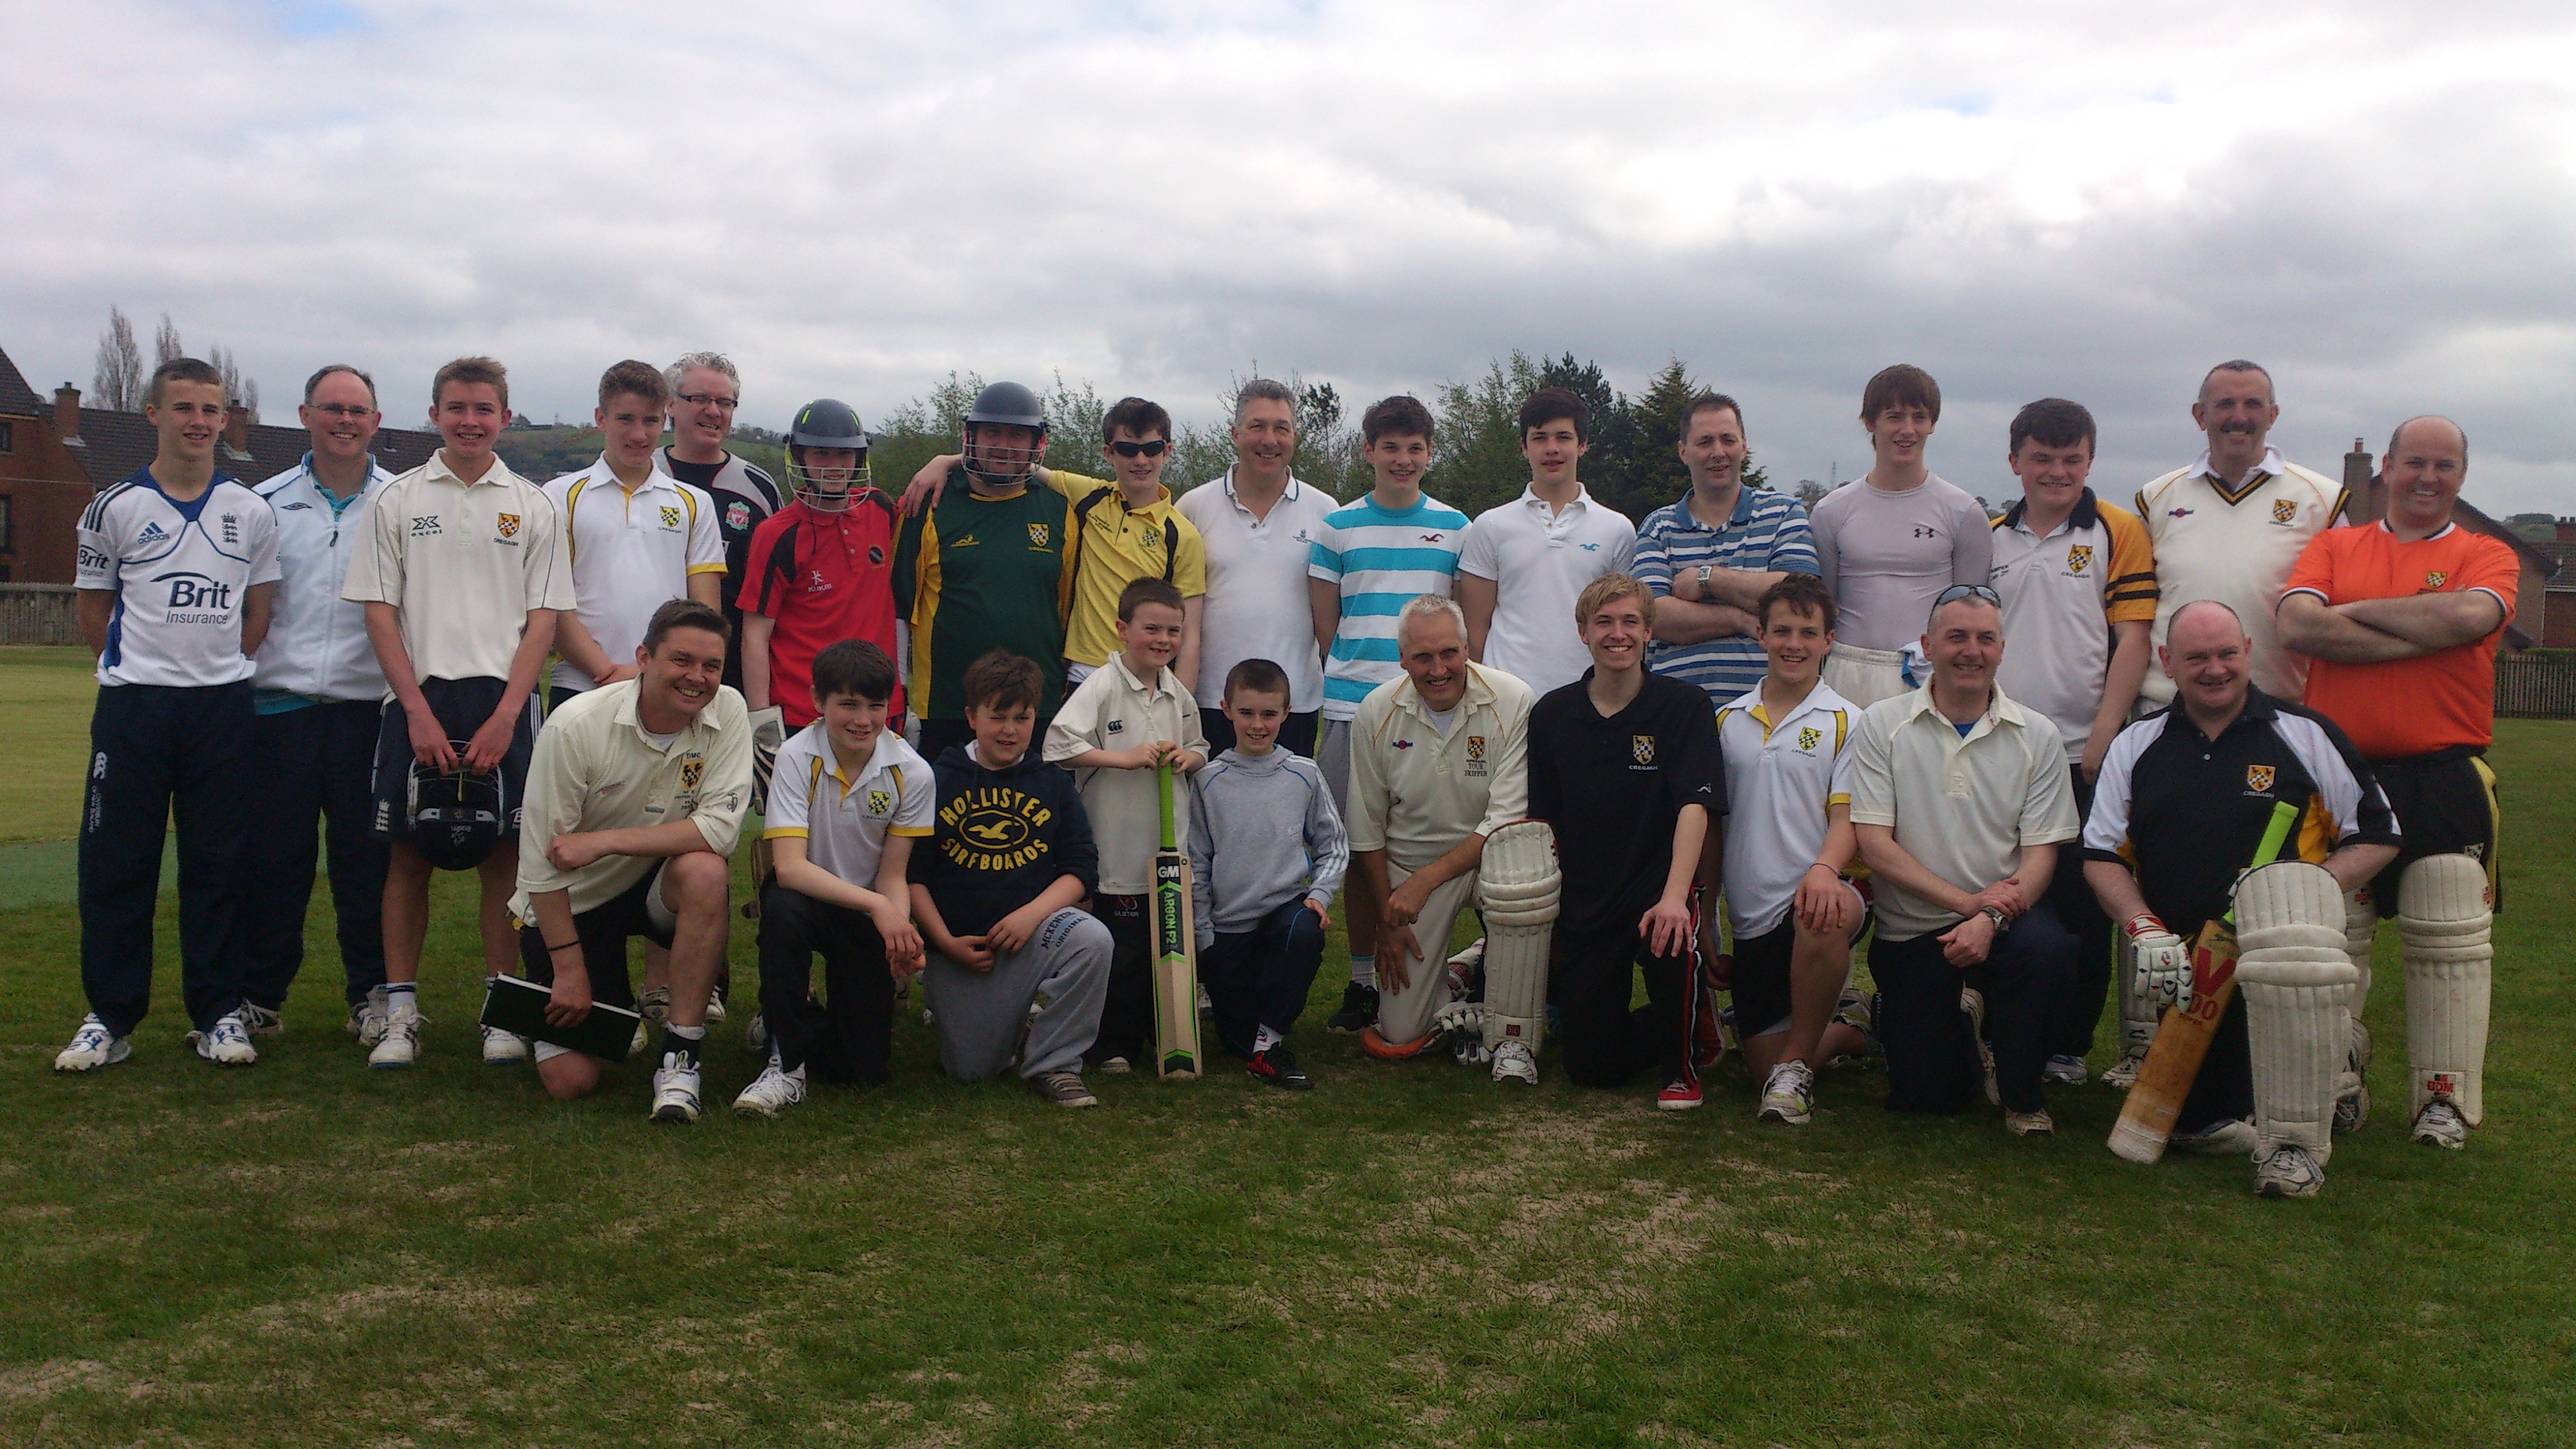 Lads v Dads - May 2013